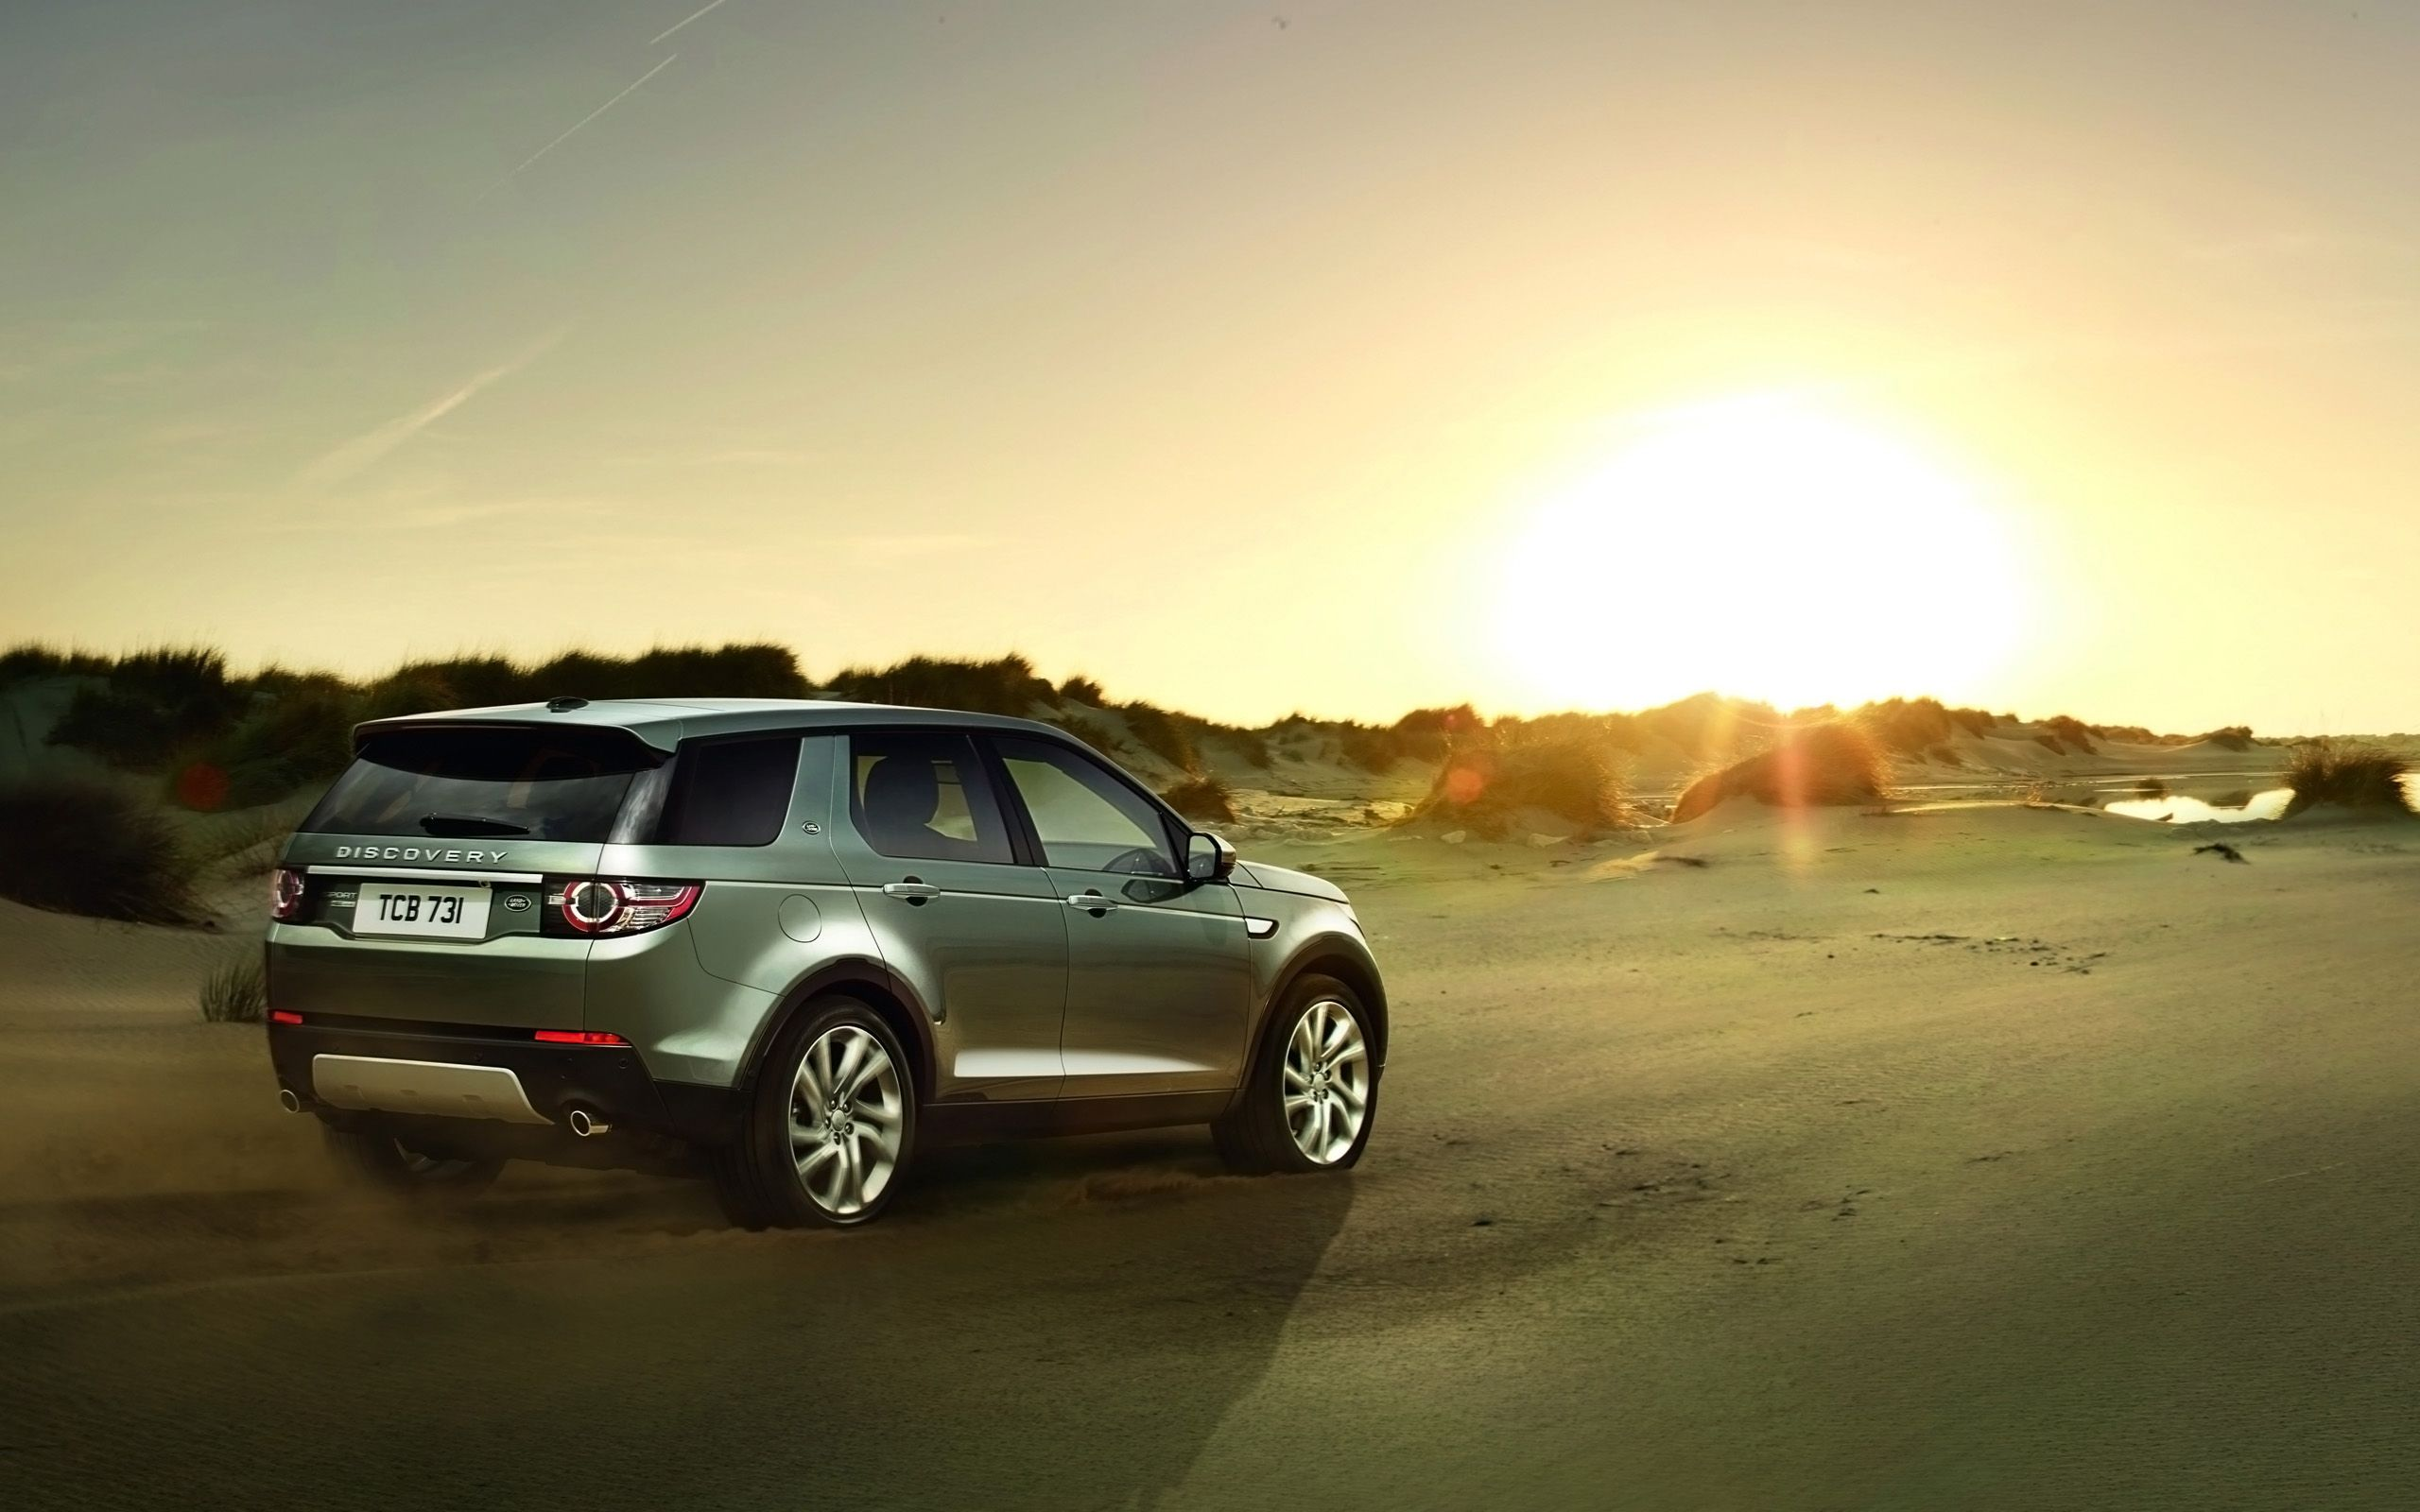 Sport Collection Hd Wallpapers 2048x2048 Sport Wallpapers: Are You Looking For 2015 Larte Desidn Range Rover HD